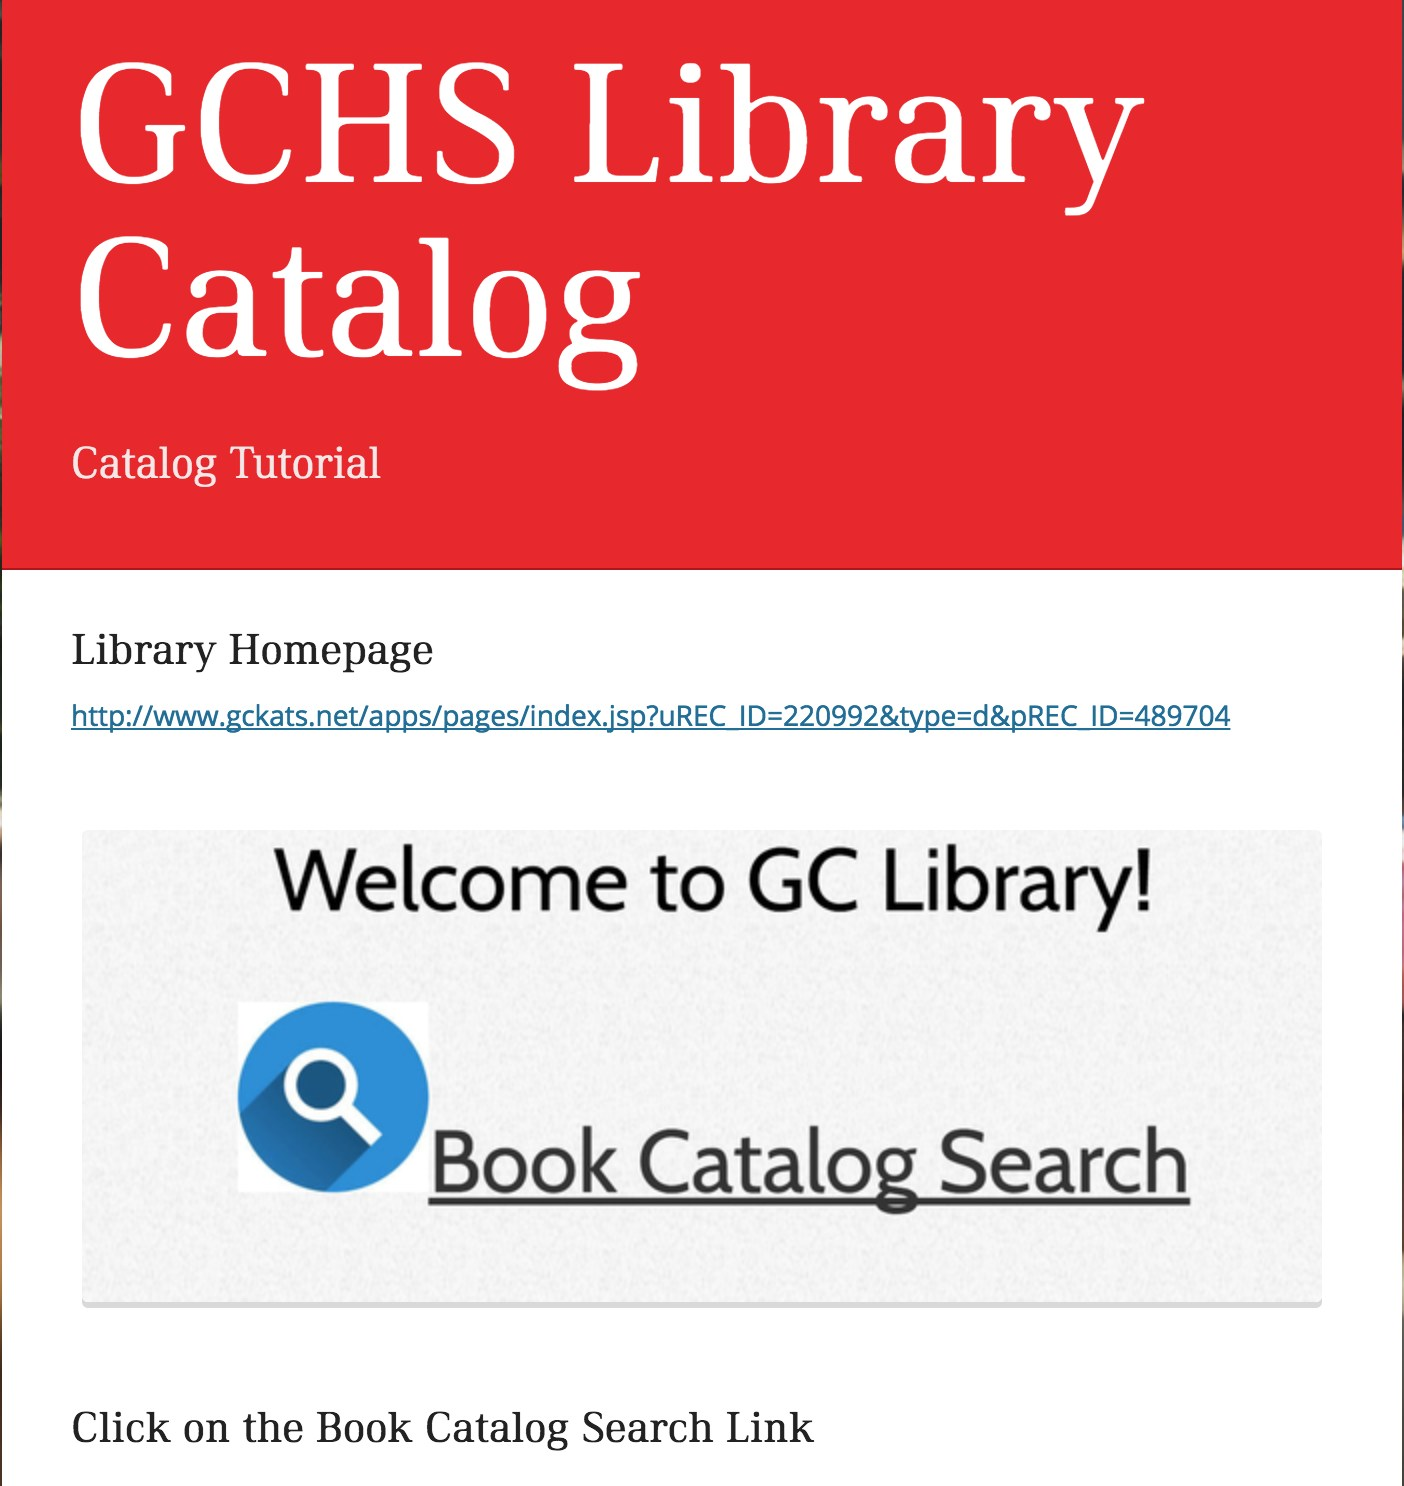 Click on Book Catalog Search